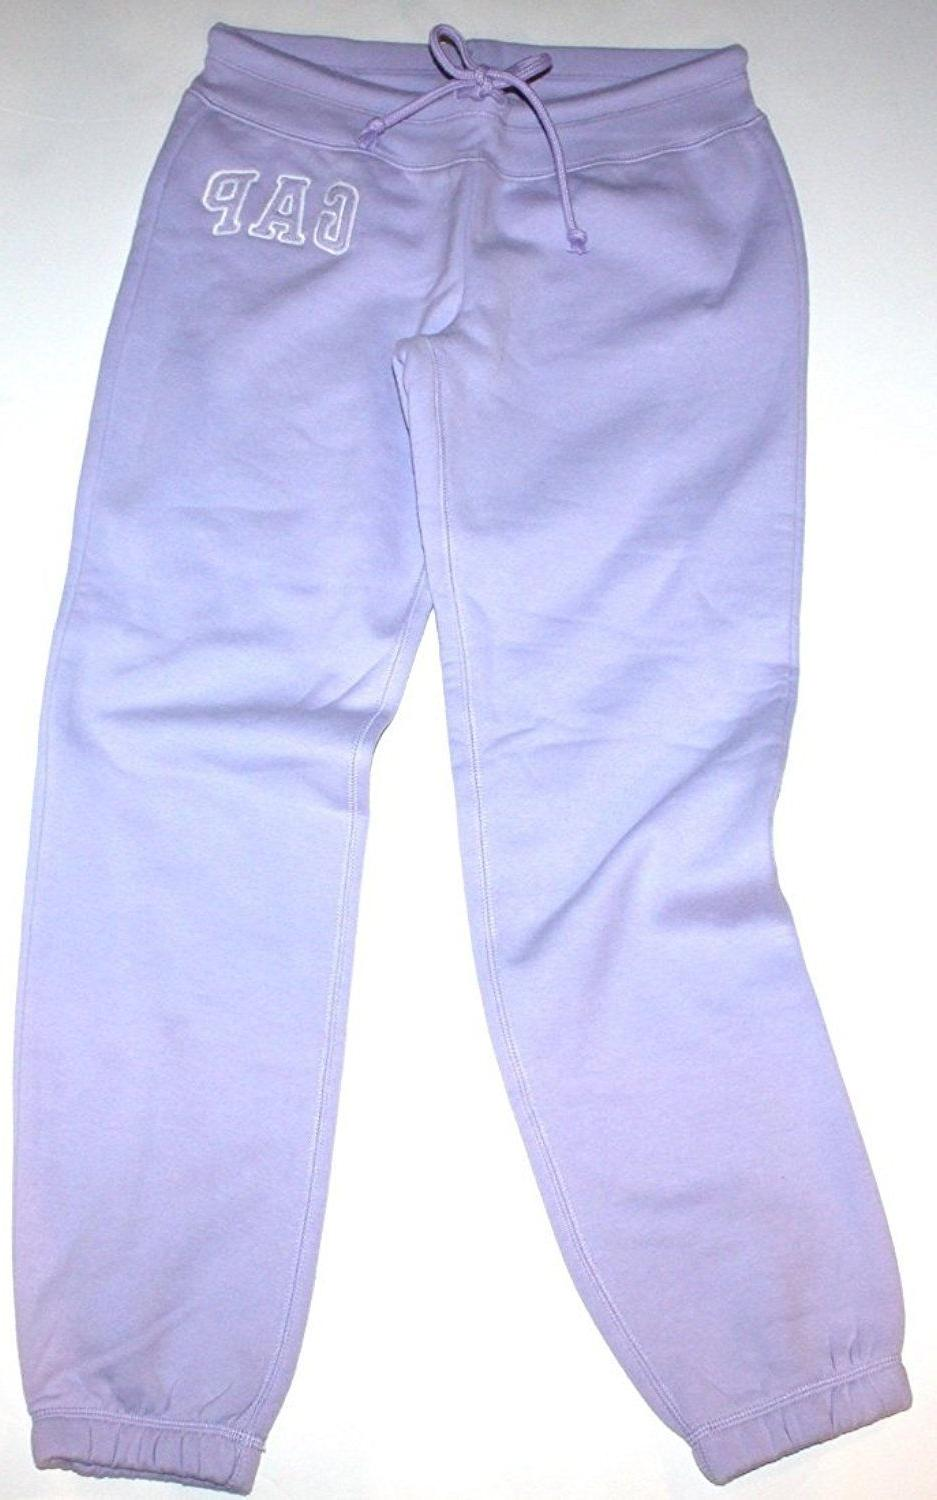 Gap Sweatpants Lined Joggers Stretch